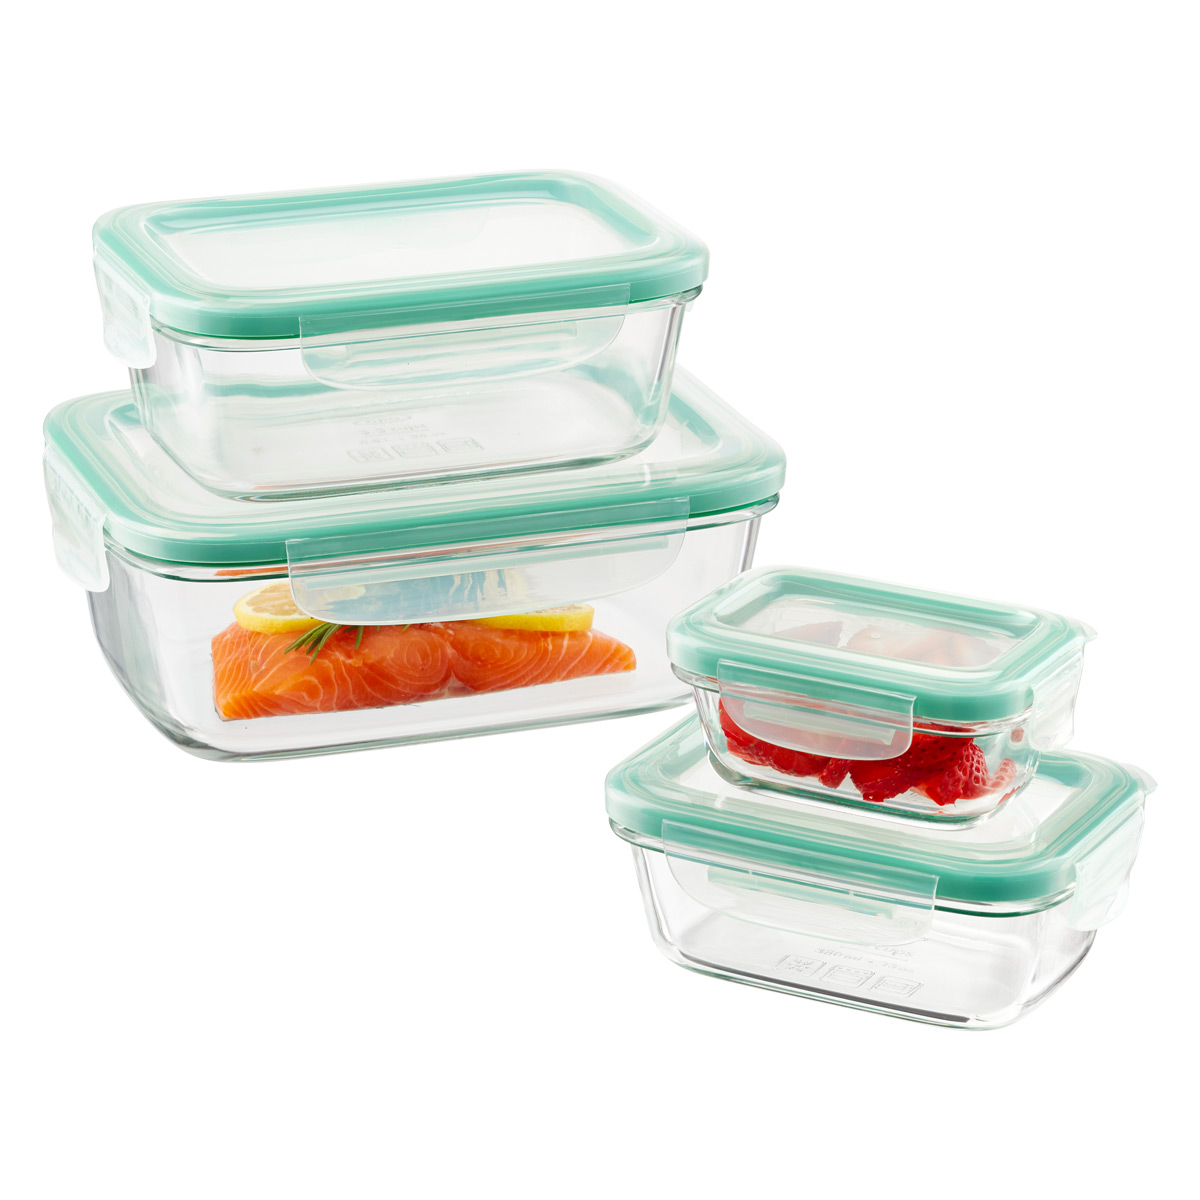 OXO Good Grips 8-Piece Smart Seal Rectangular Glass Food Storage Set  sc 1 st  The Container Store & OXO Good Grips 8-Piece Smart Seal Rectangular Glass Food Storage Set ...